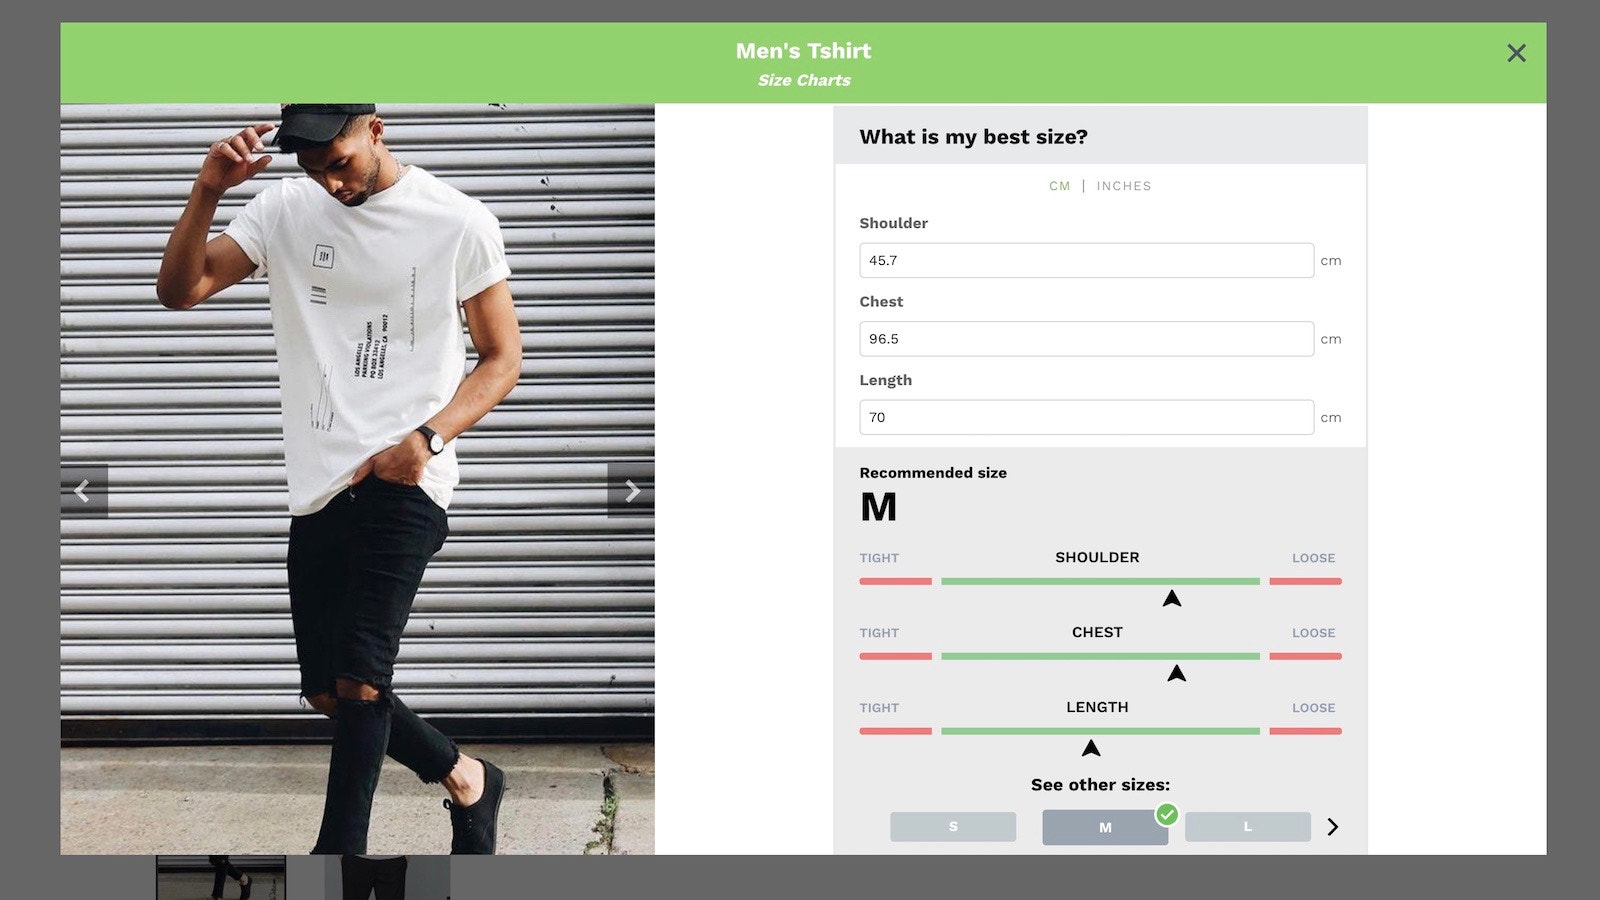 kiwi sizing, size chart, fit finder - Modal Size Recommender